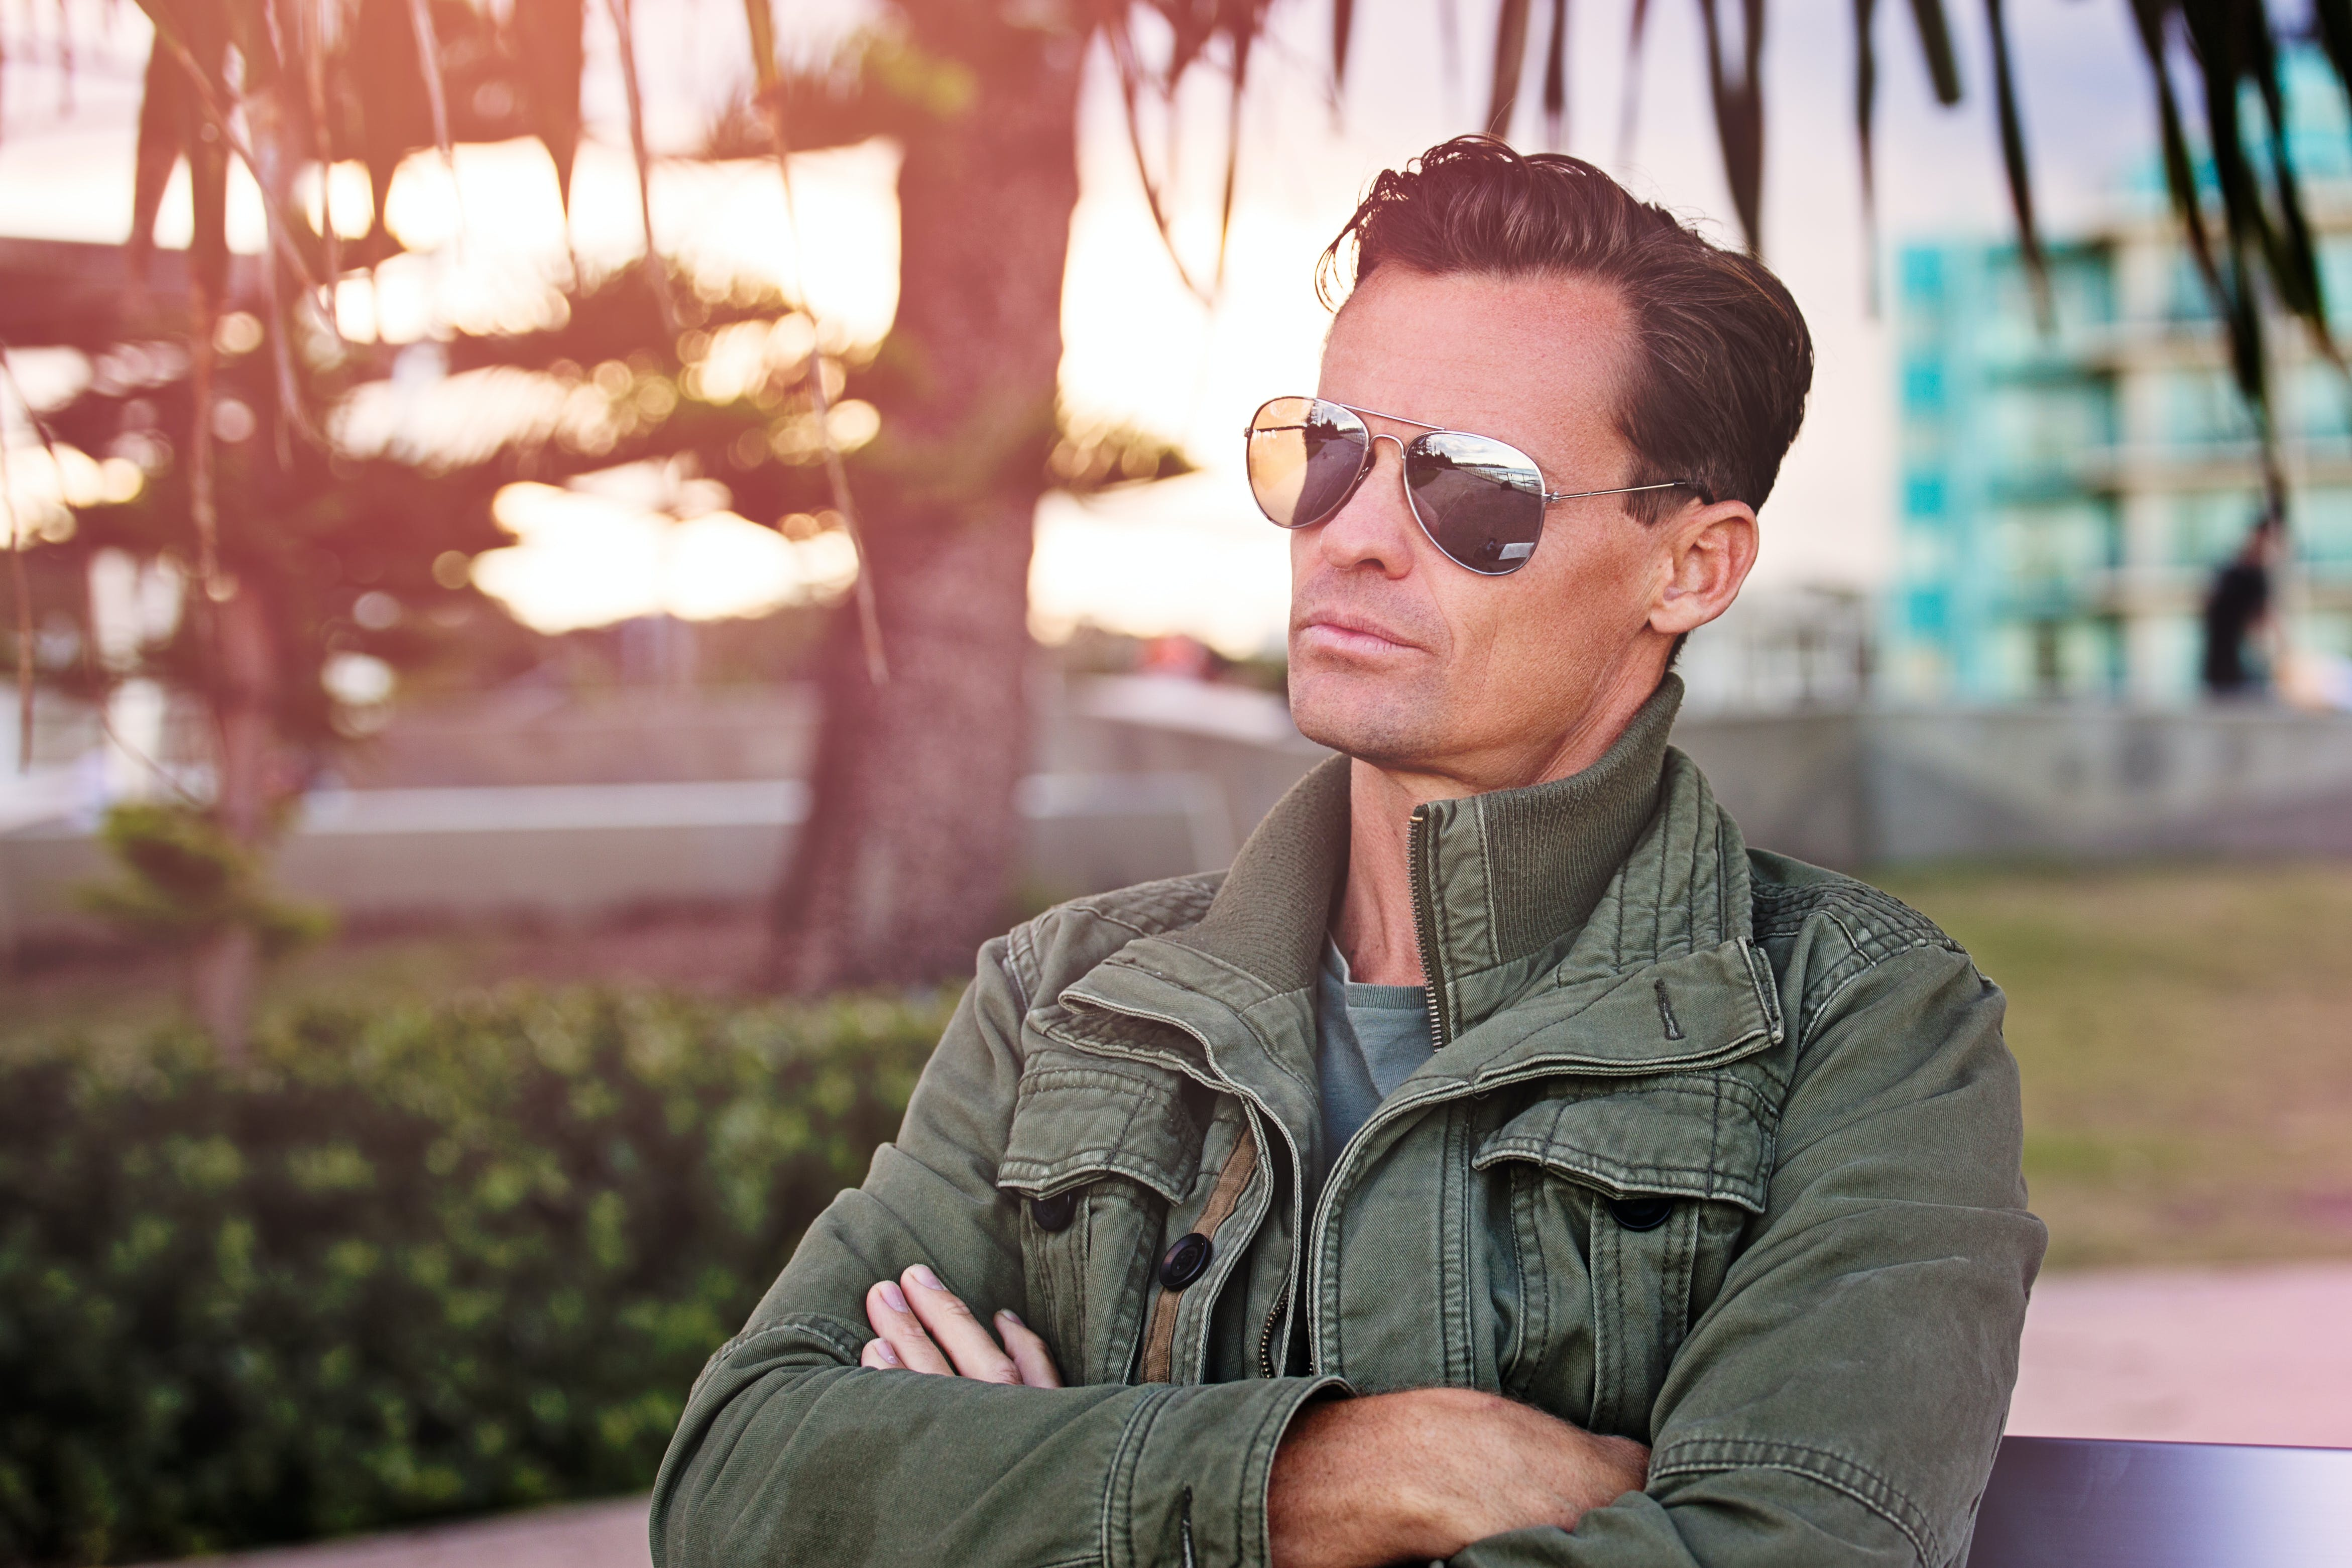 Man Wearing Sunglasses Sitting on Bench